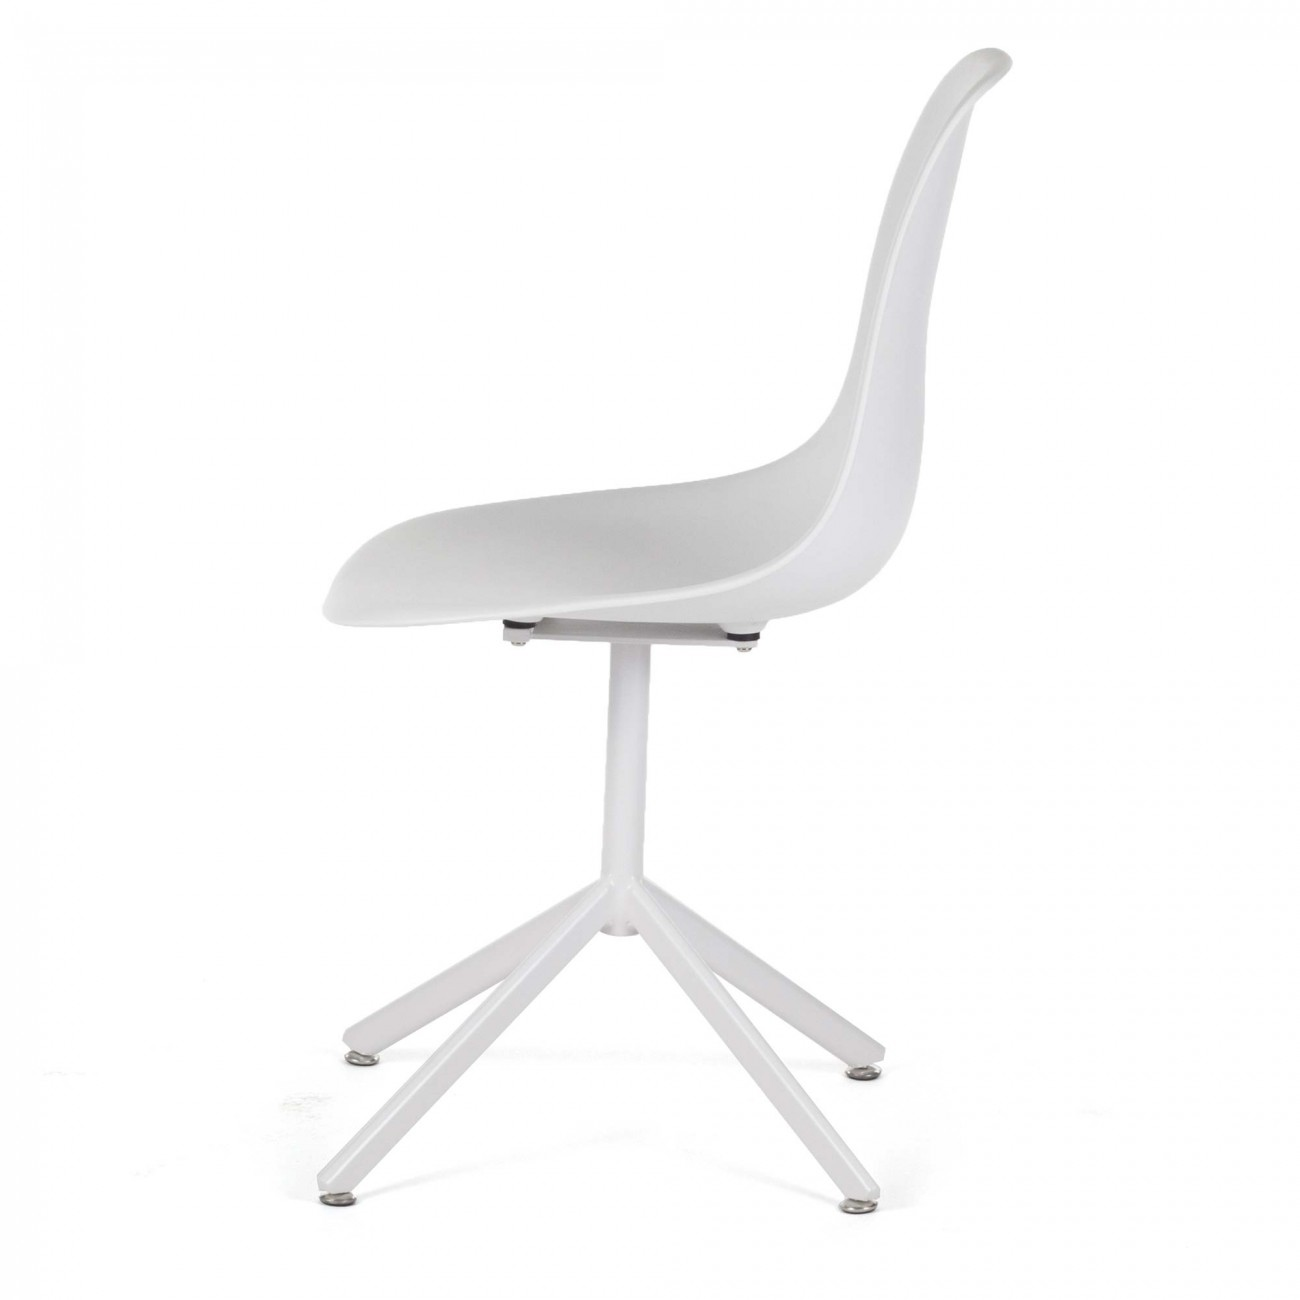 Chaise design si ge de bureau salon retro rembourr e for Chaise scandinave plastique